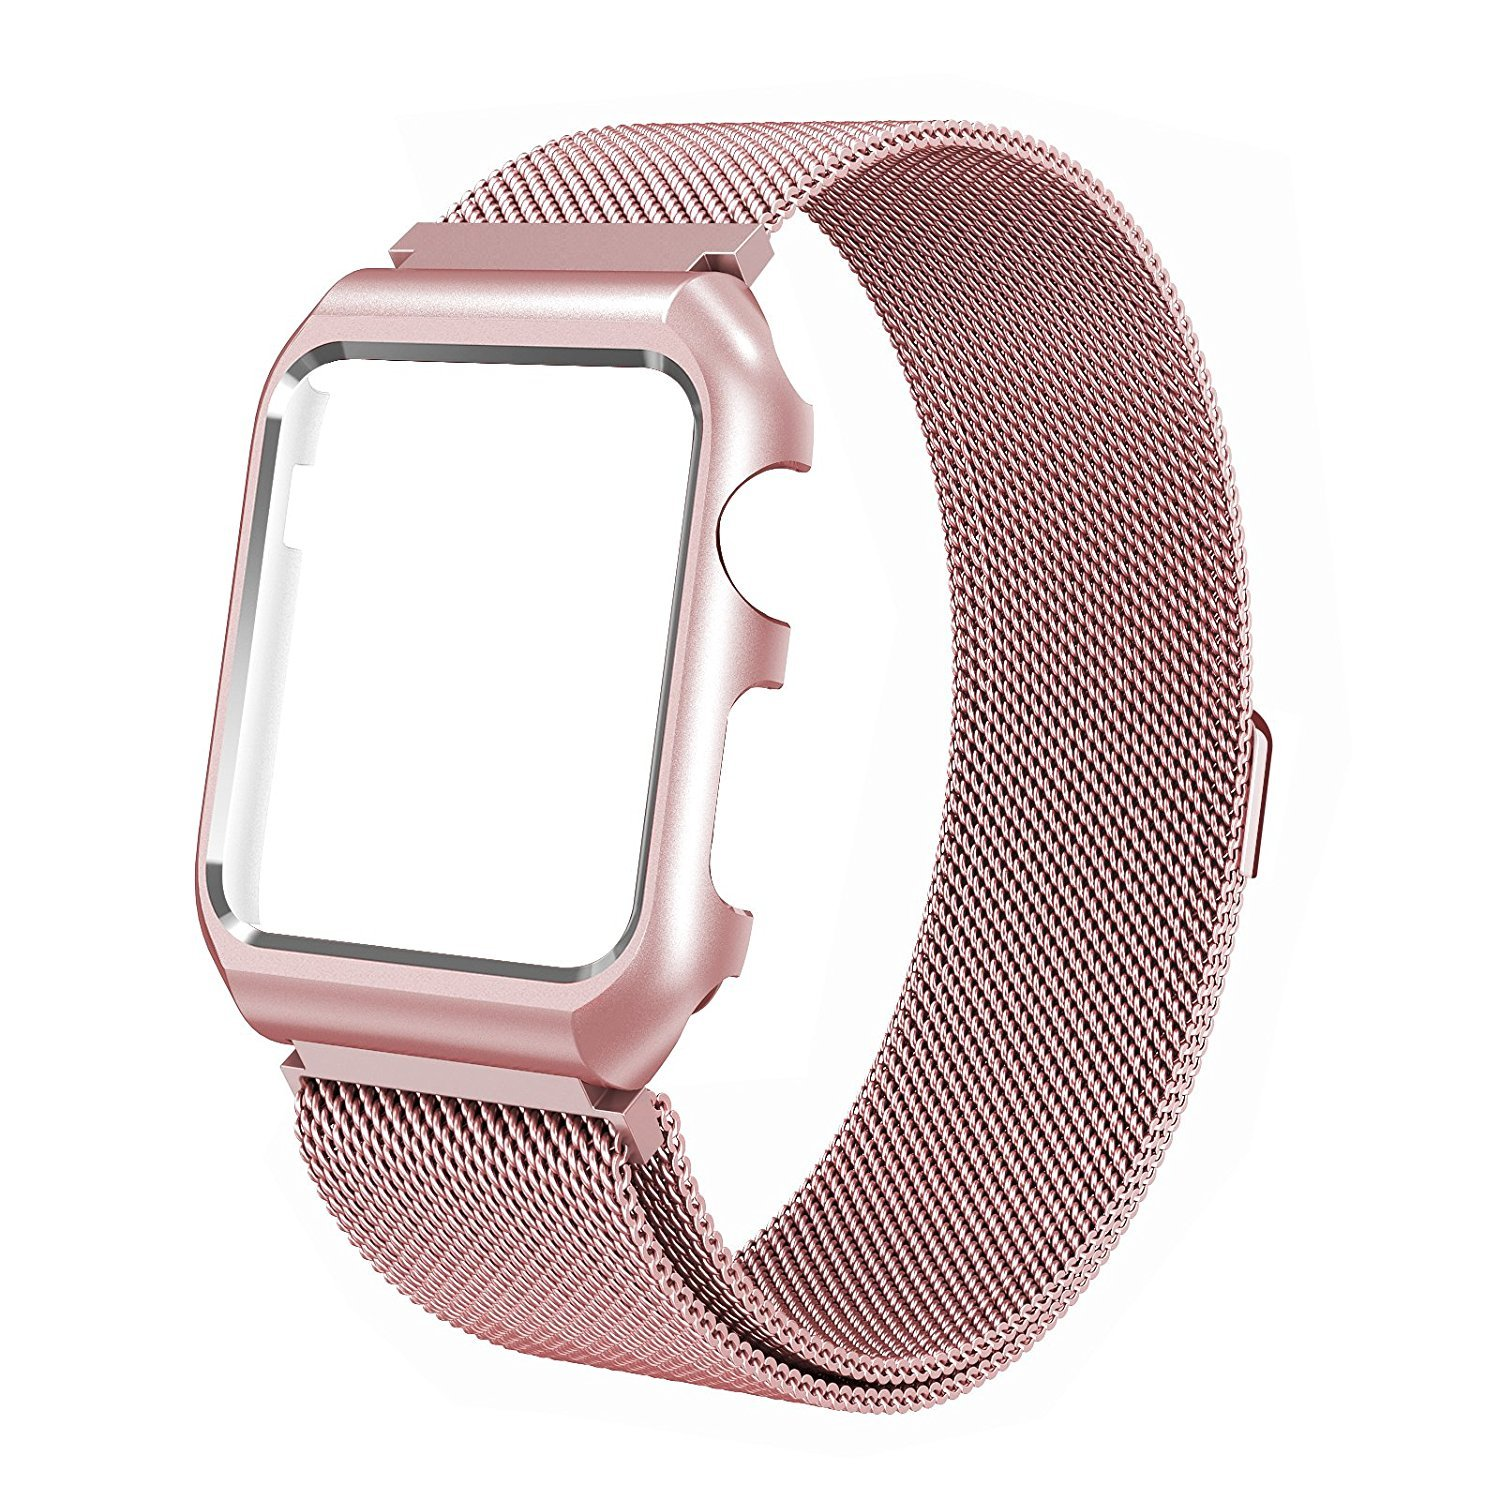 Apple Watch Band 38mm Milanese Loop Stainless Steel Mesh with Adjustable Magnetic Replacement Wrist Band with Protective iwatch Case for Series 1/2 Apple Watch Gold Women Nike+(Rose Gold)